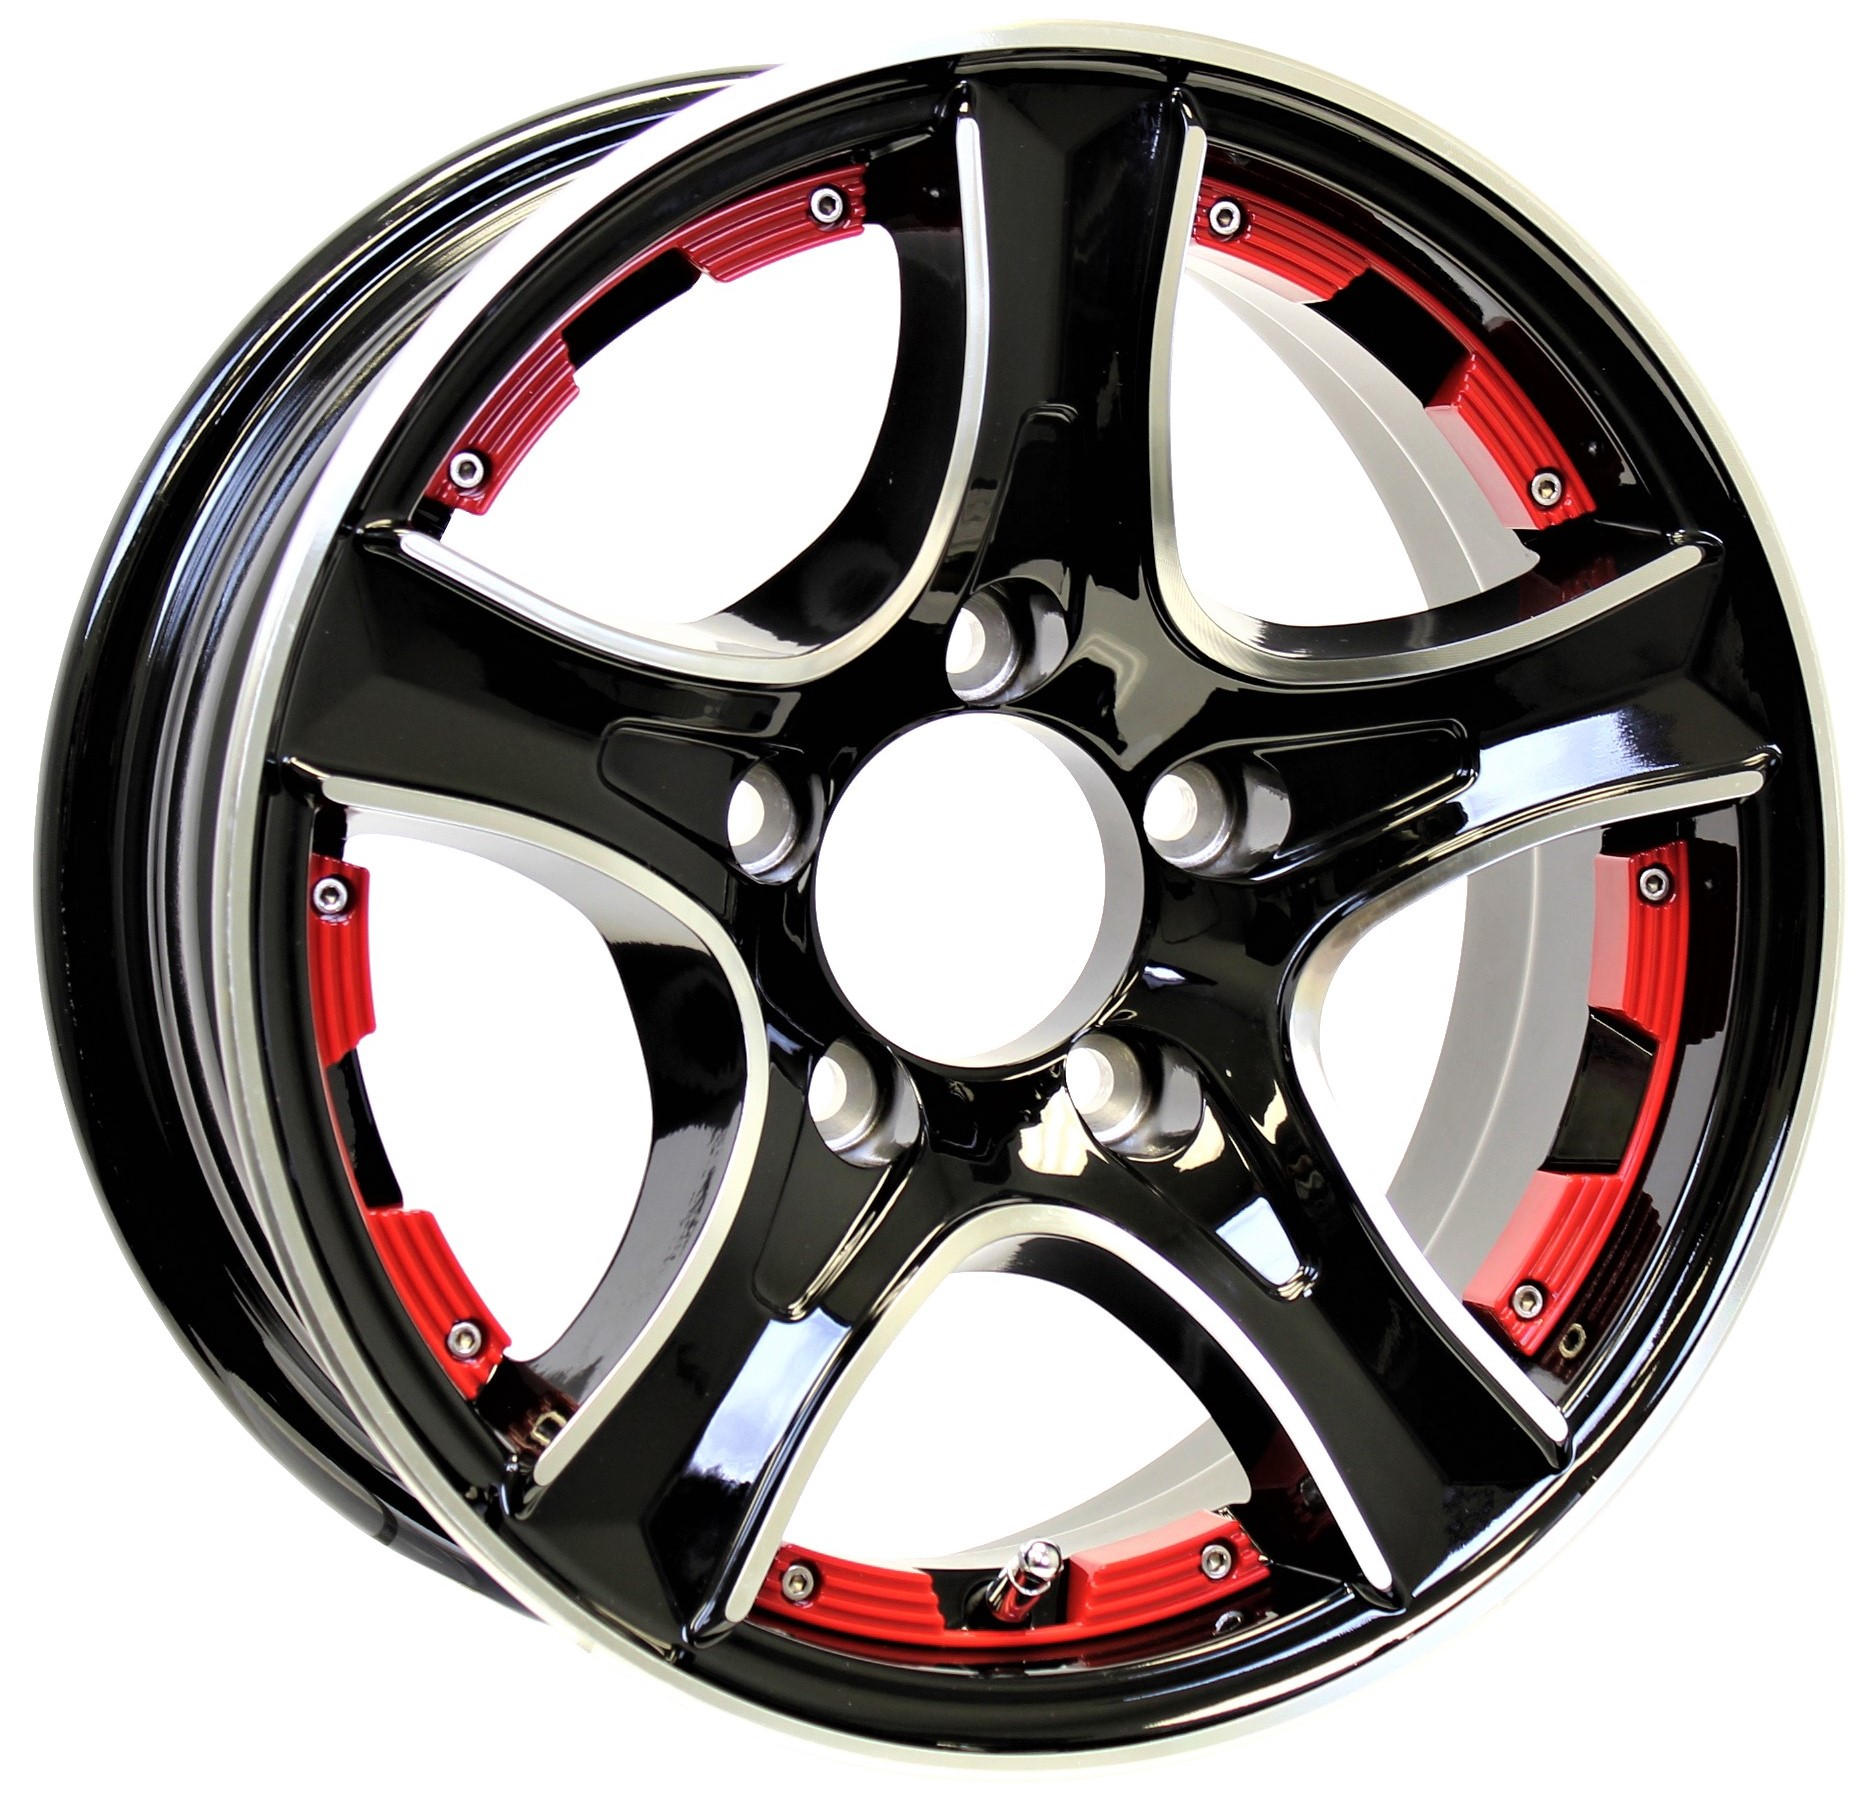 Thoroughbred 14x5.5 5-Lug Black Aluminum Trailer Wheel with Red Inserts Image